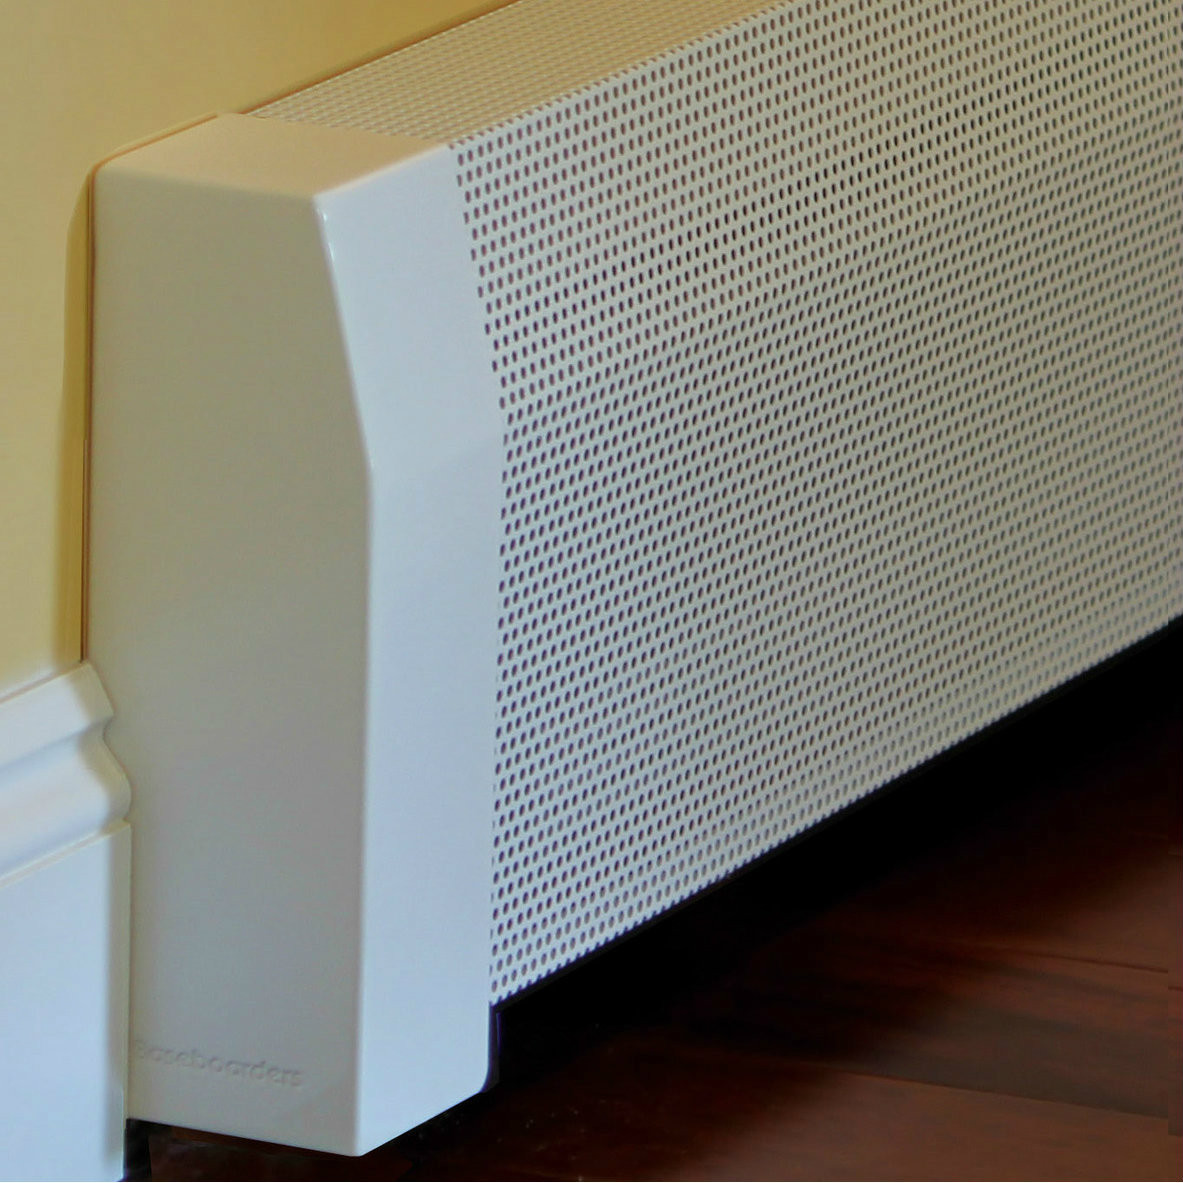 #1D0F0B Tall Baseboard Heater Cover Ventandcover.com Most Effective 3465 Heater Vent Covers pictures with 1183x1183 px on helpvideos.info - Air Conditioners, Air Coolers and more